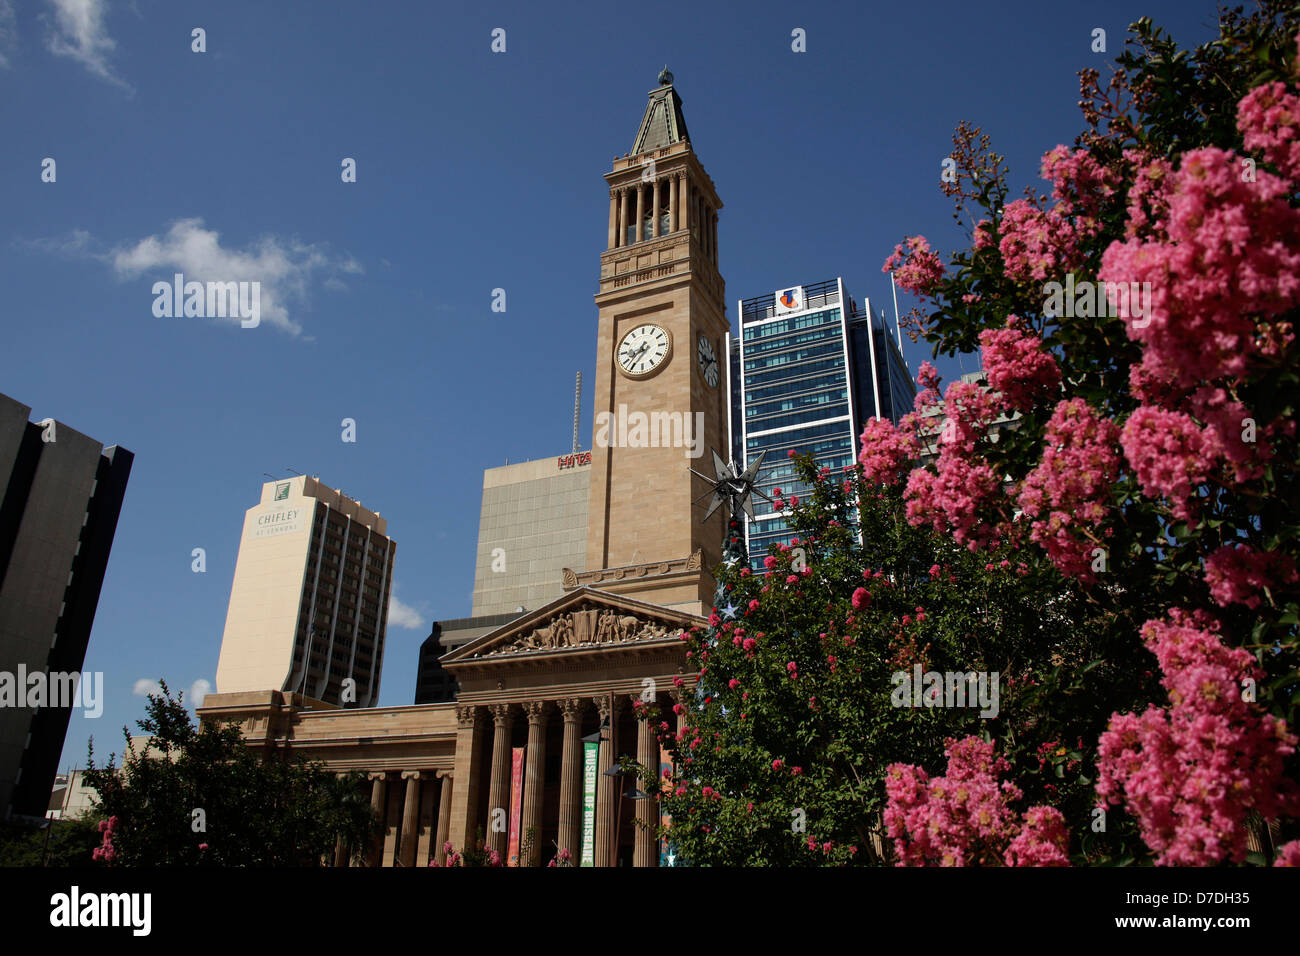 City Hall with clock tower in Brisbane, Queensland, Australia - Stock Image